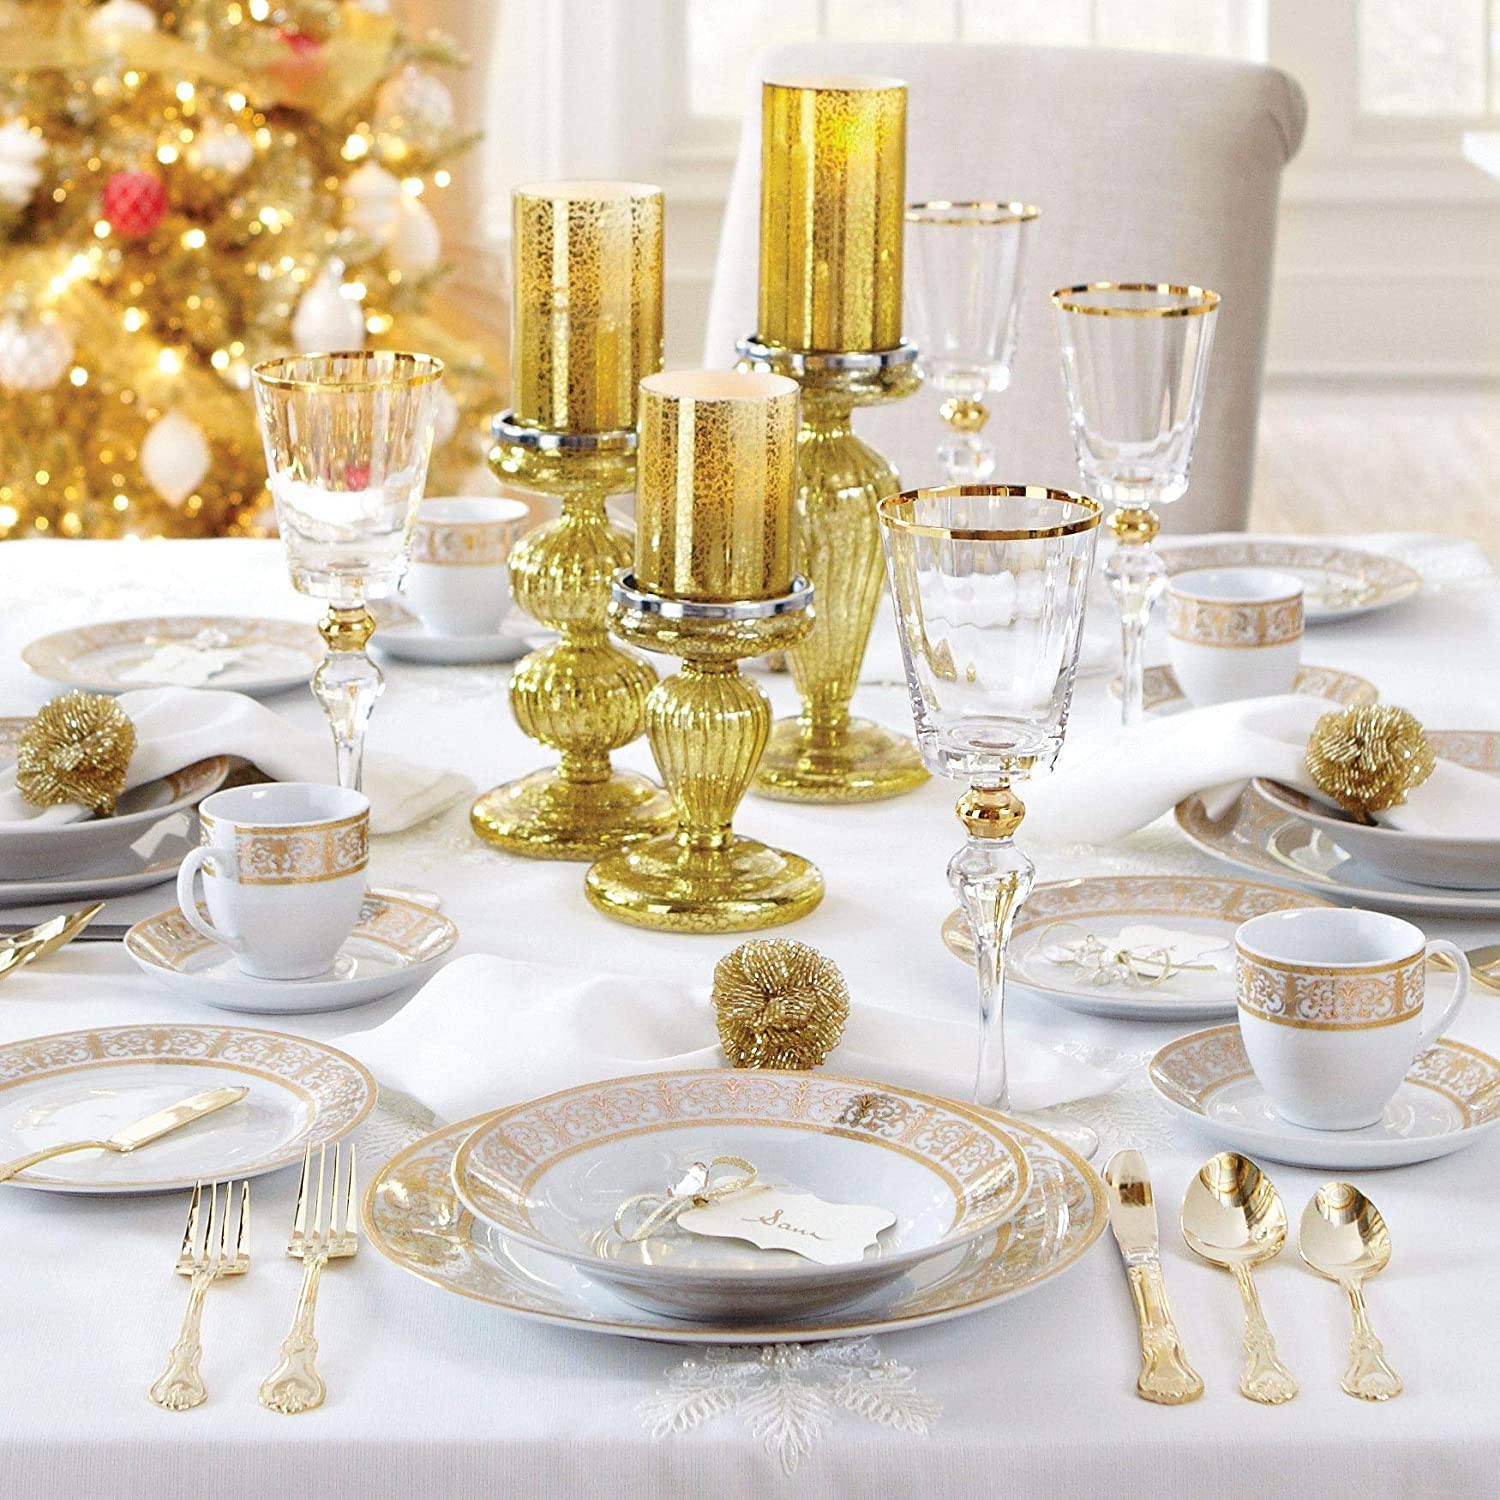 Brylanehome 40-Pc. Golden Ceramic Dinnerware Set (Gold White)